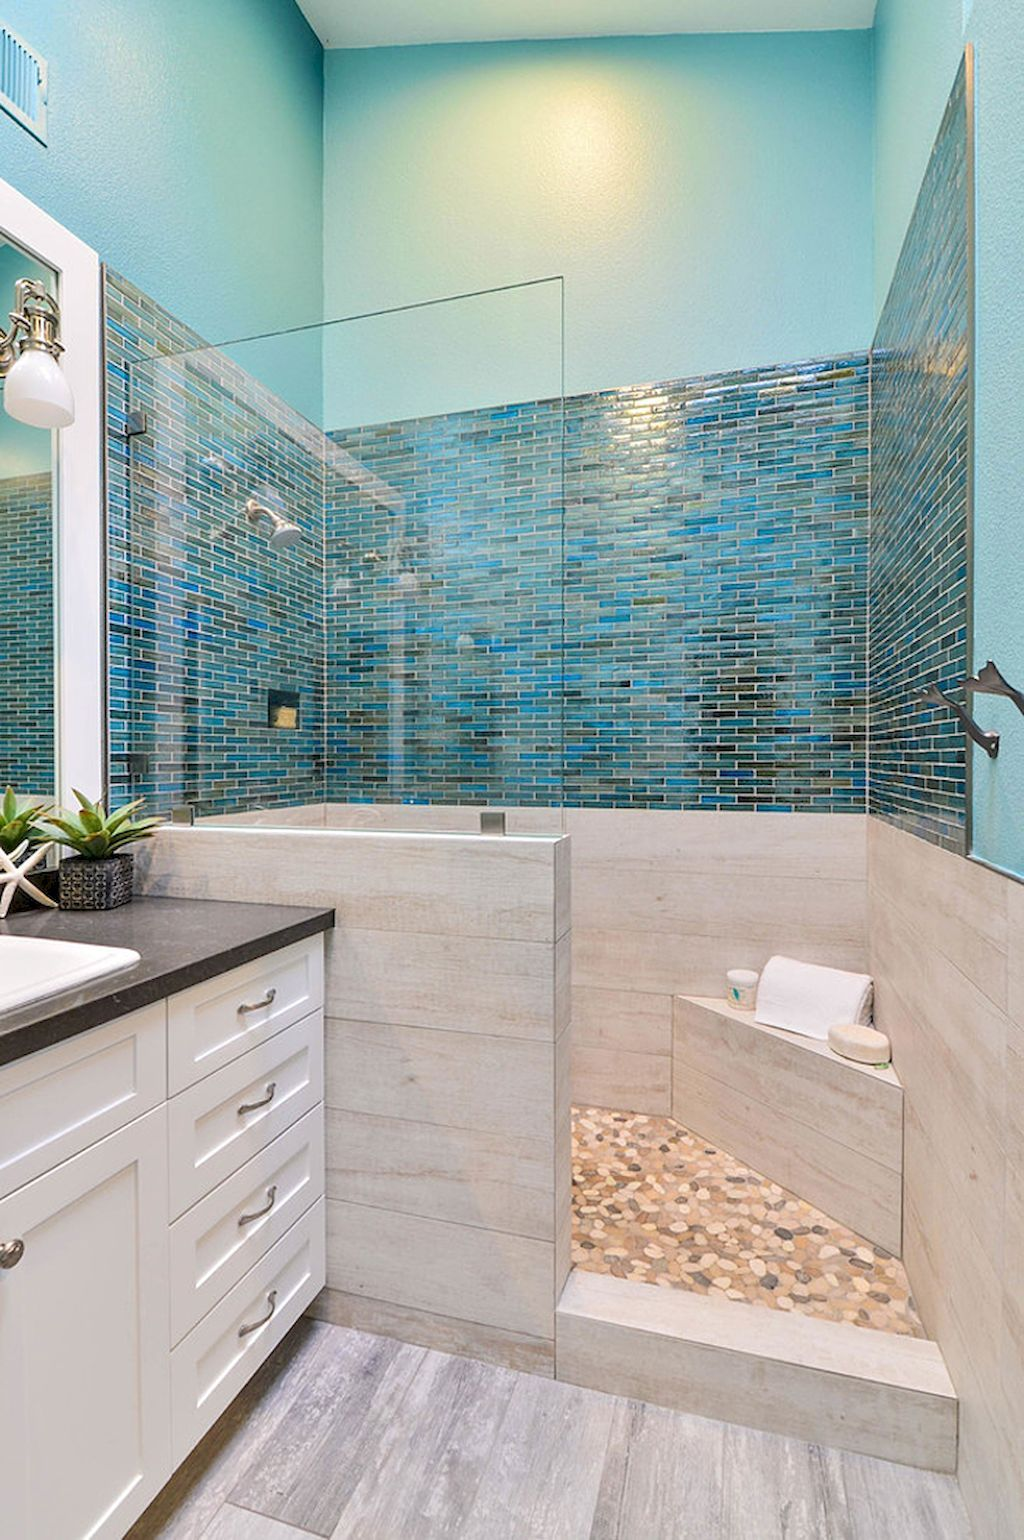 Cool 35 Awesome Coastal Style Nautical Bathroom Designs Ideas Cool San Diego Bathroom Design Inspiration